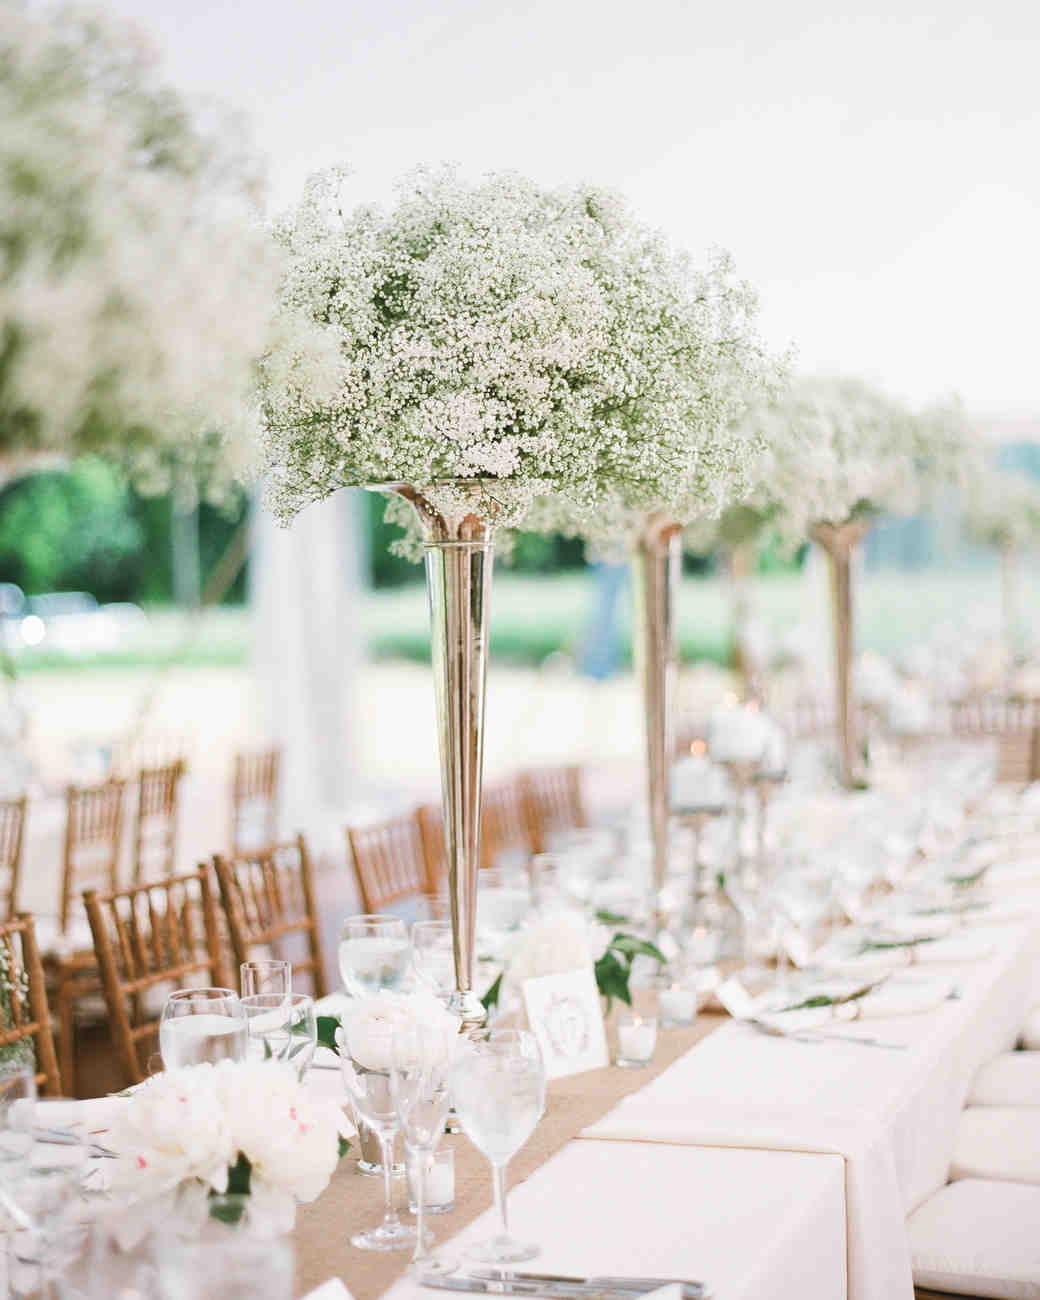 Ideas For Wedding Flower Arrangements: Affordable Wedding Centerpieces That Don't Look Cheap